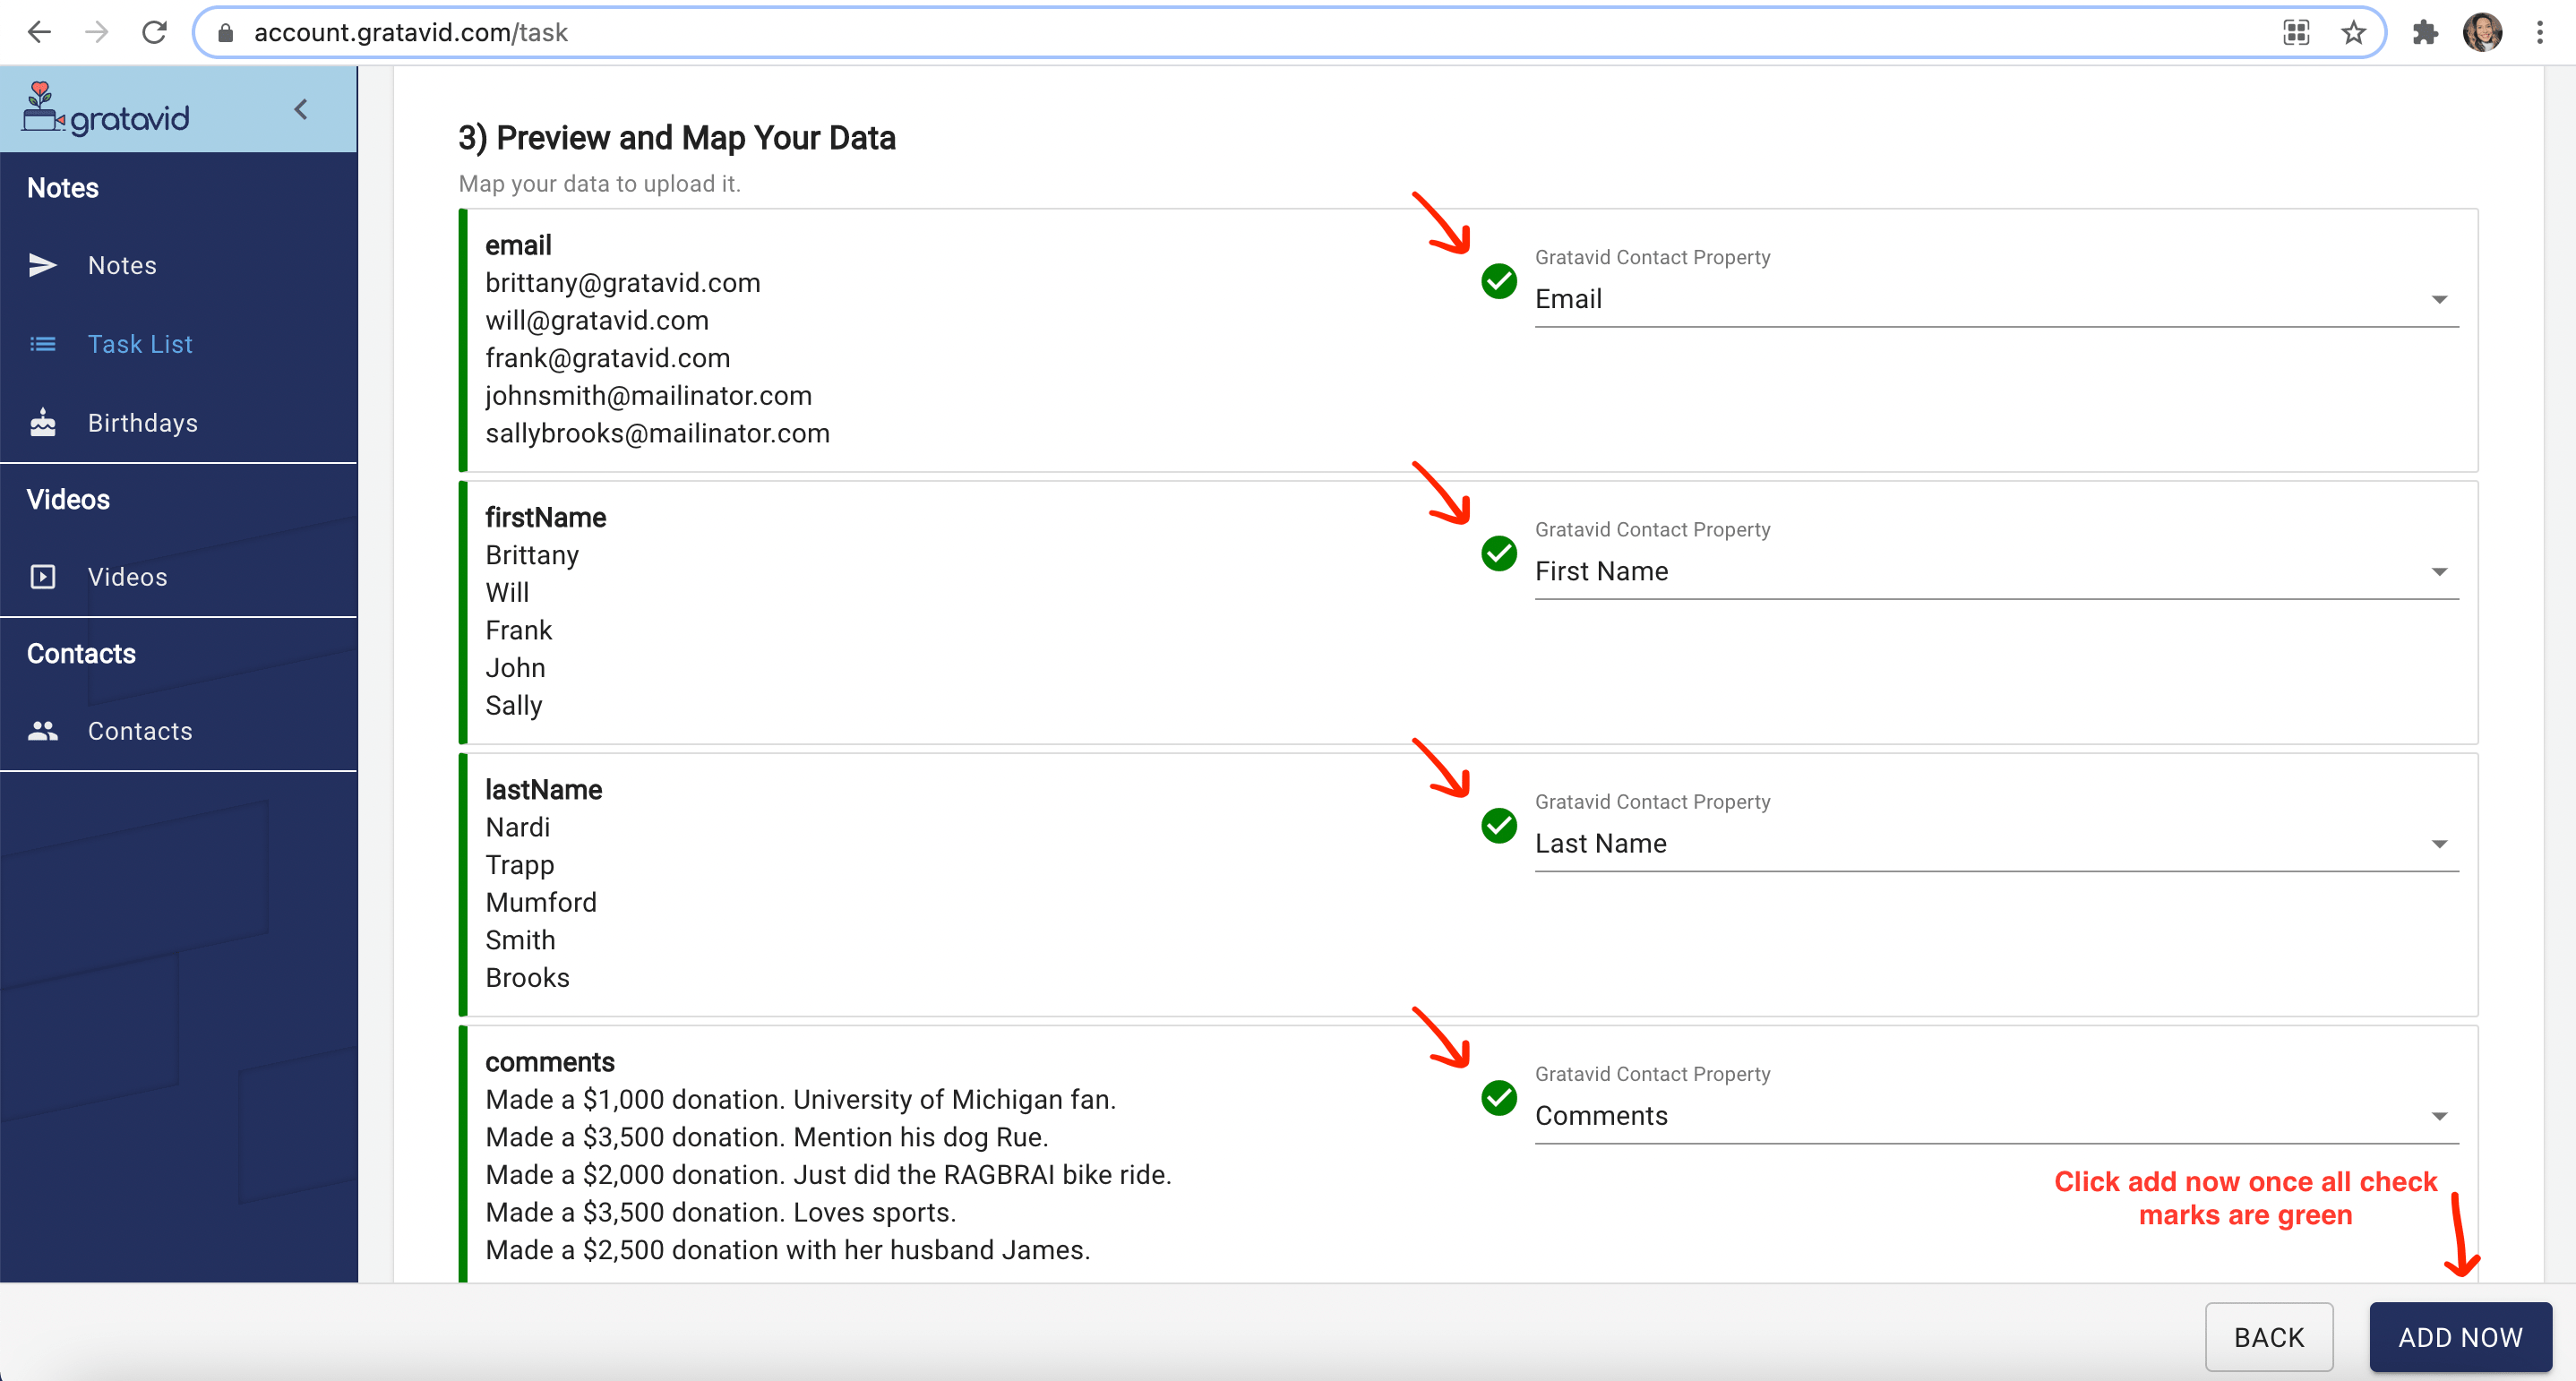 mapping check marks